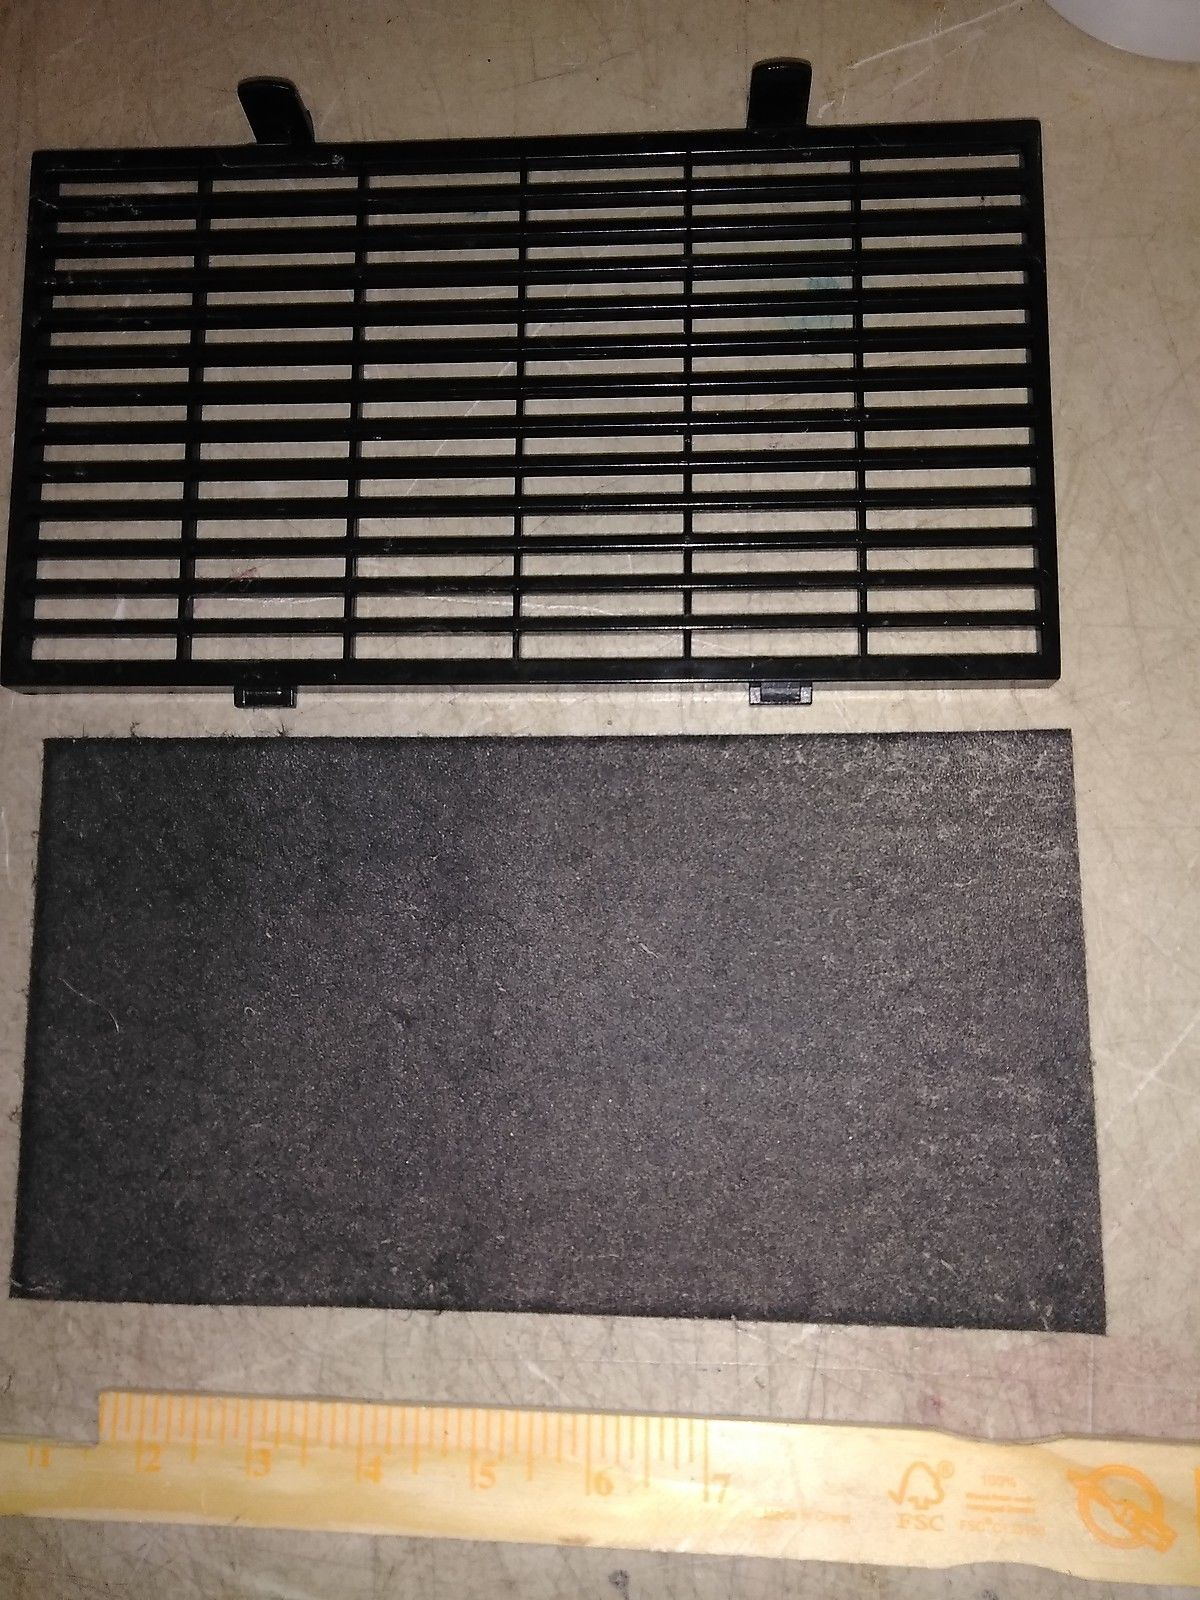 8AA72 Filter And Grille From Eden Pure 1000, and 10 similar items